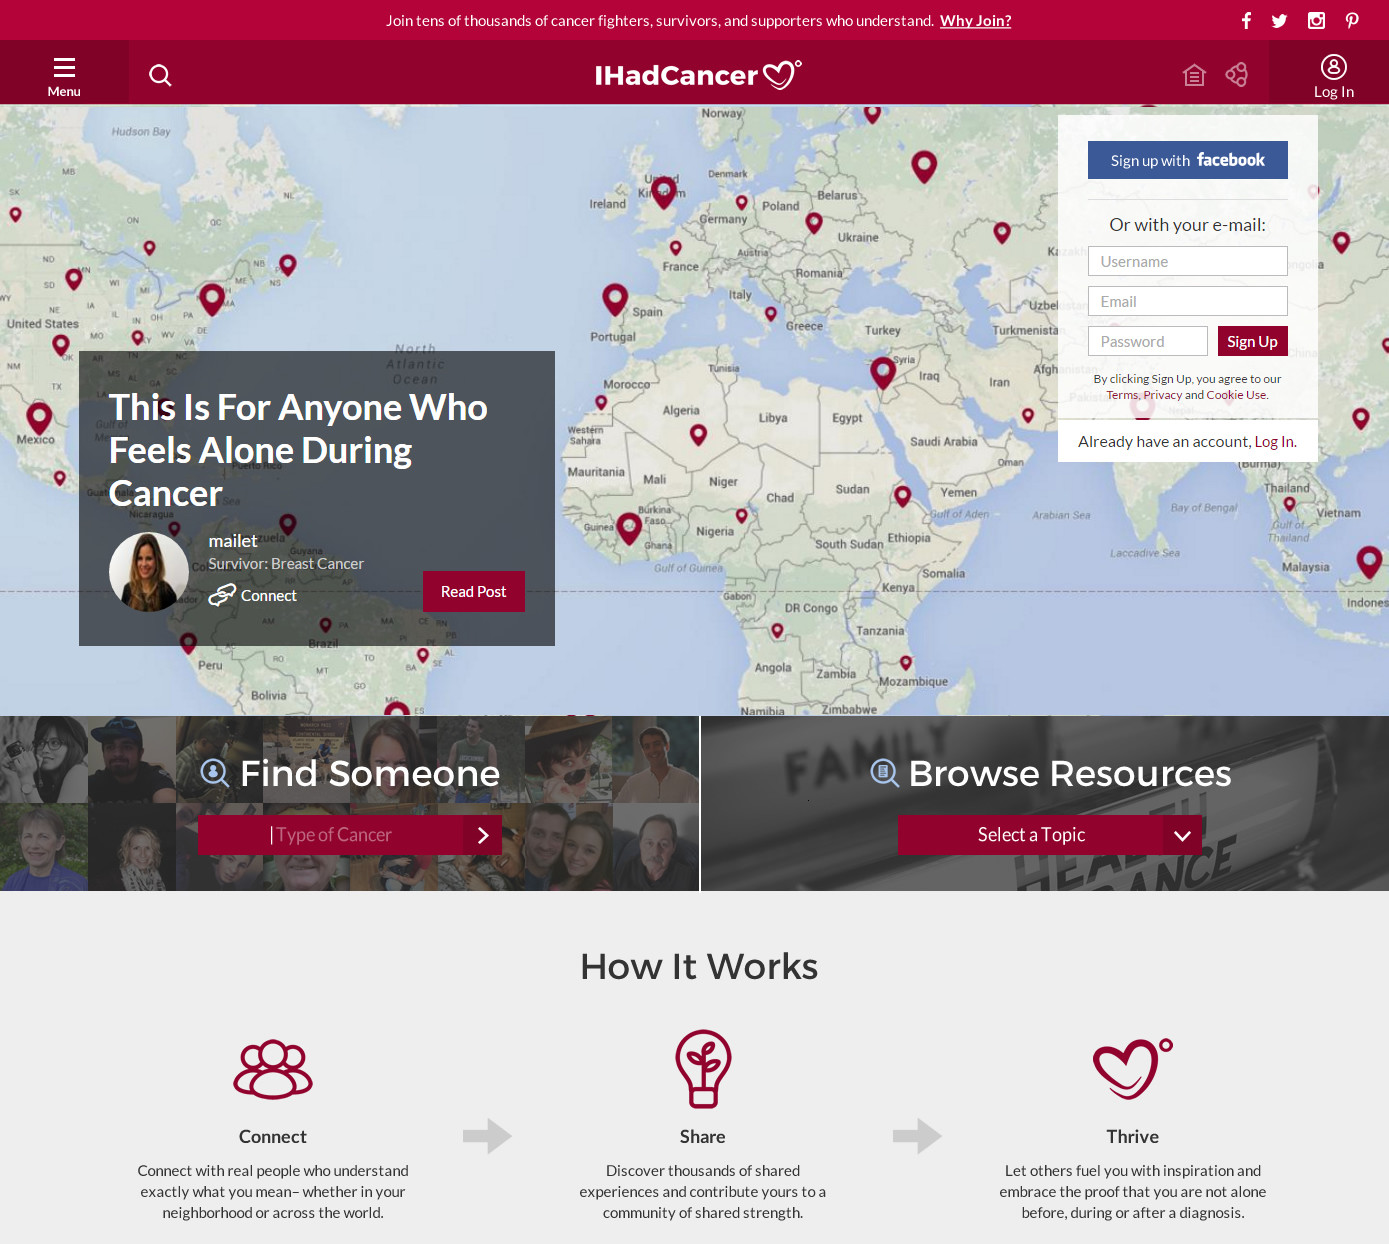 IHadCancer.com, which launched a redesign this week, helps users find one another, and share their experiences, by location or the type of cancer they're fighting or have beaten.